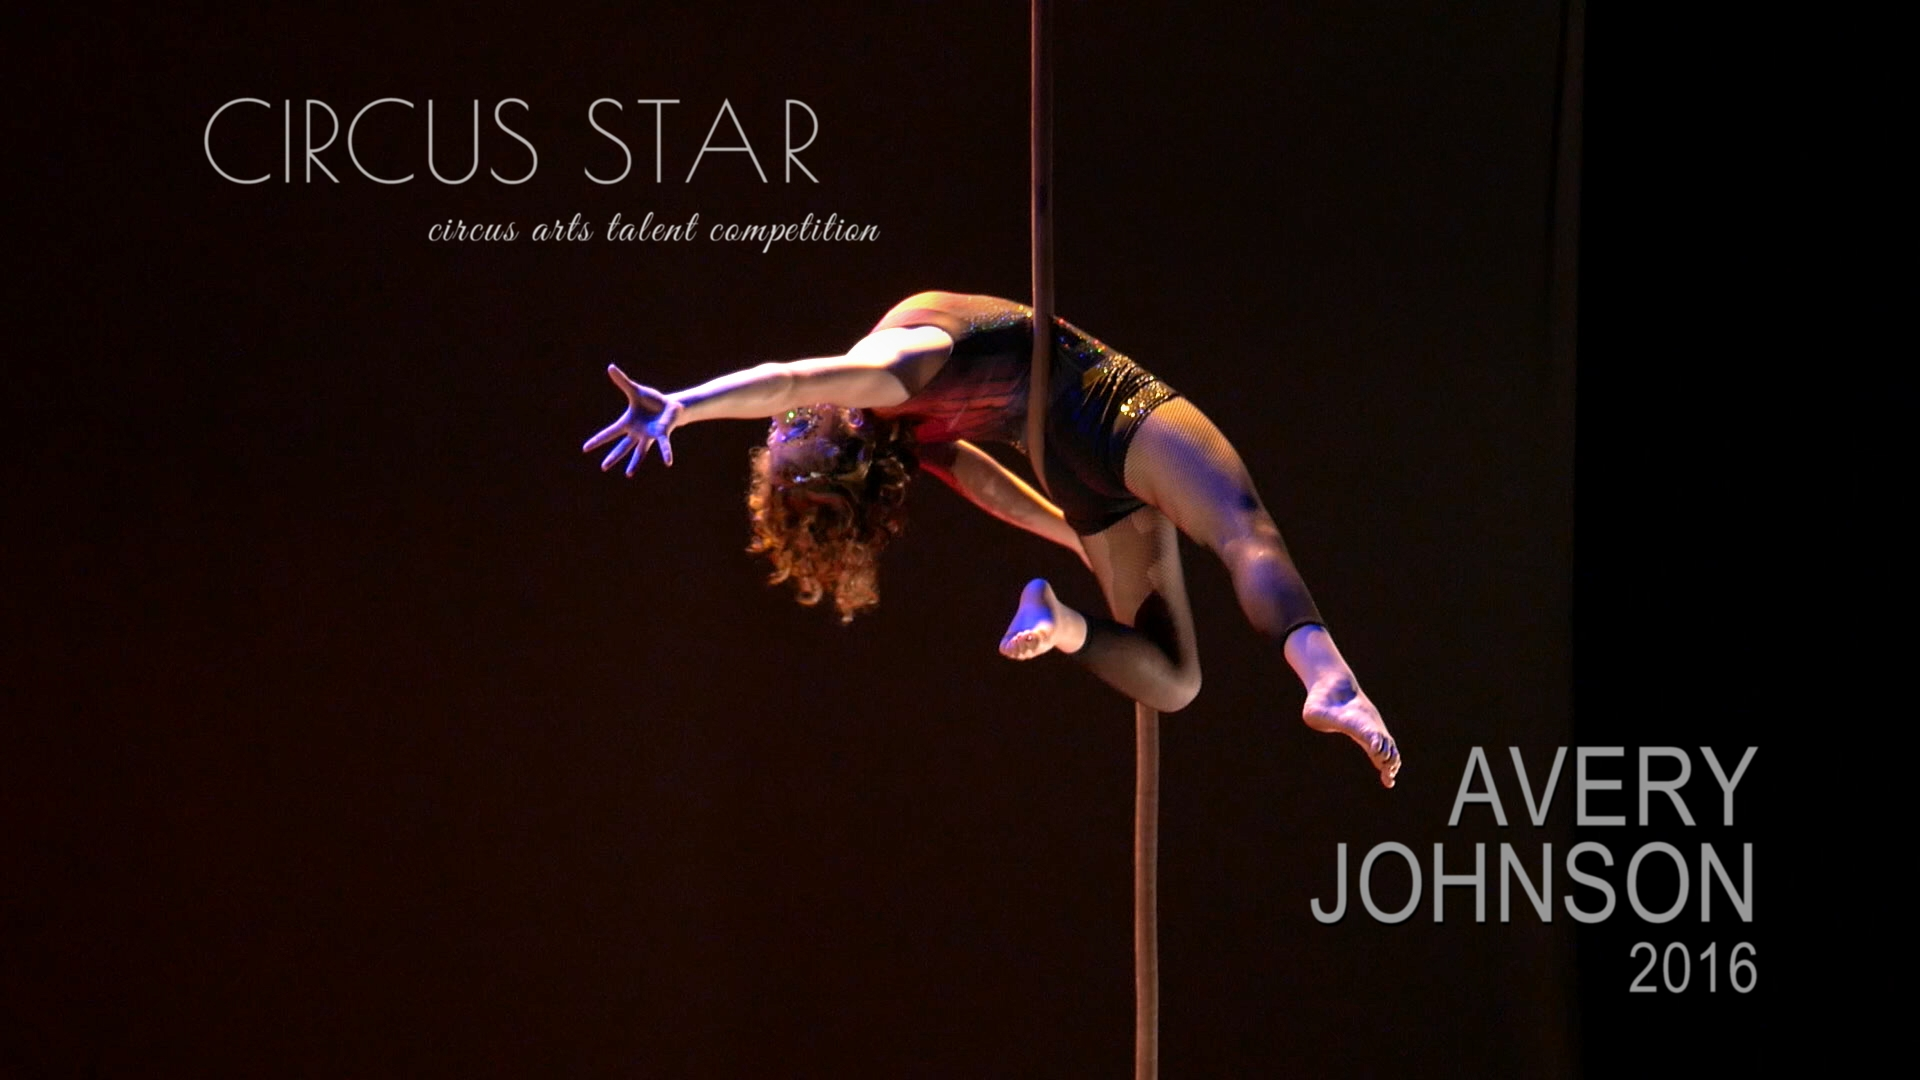 Avery Johnson, Circus Star USA 2016 performer